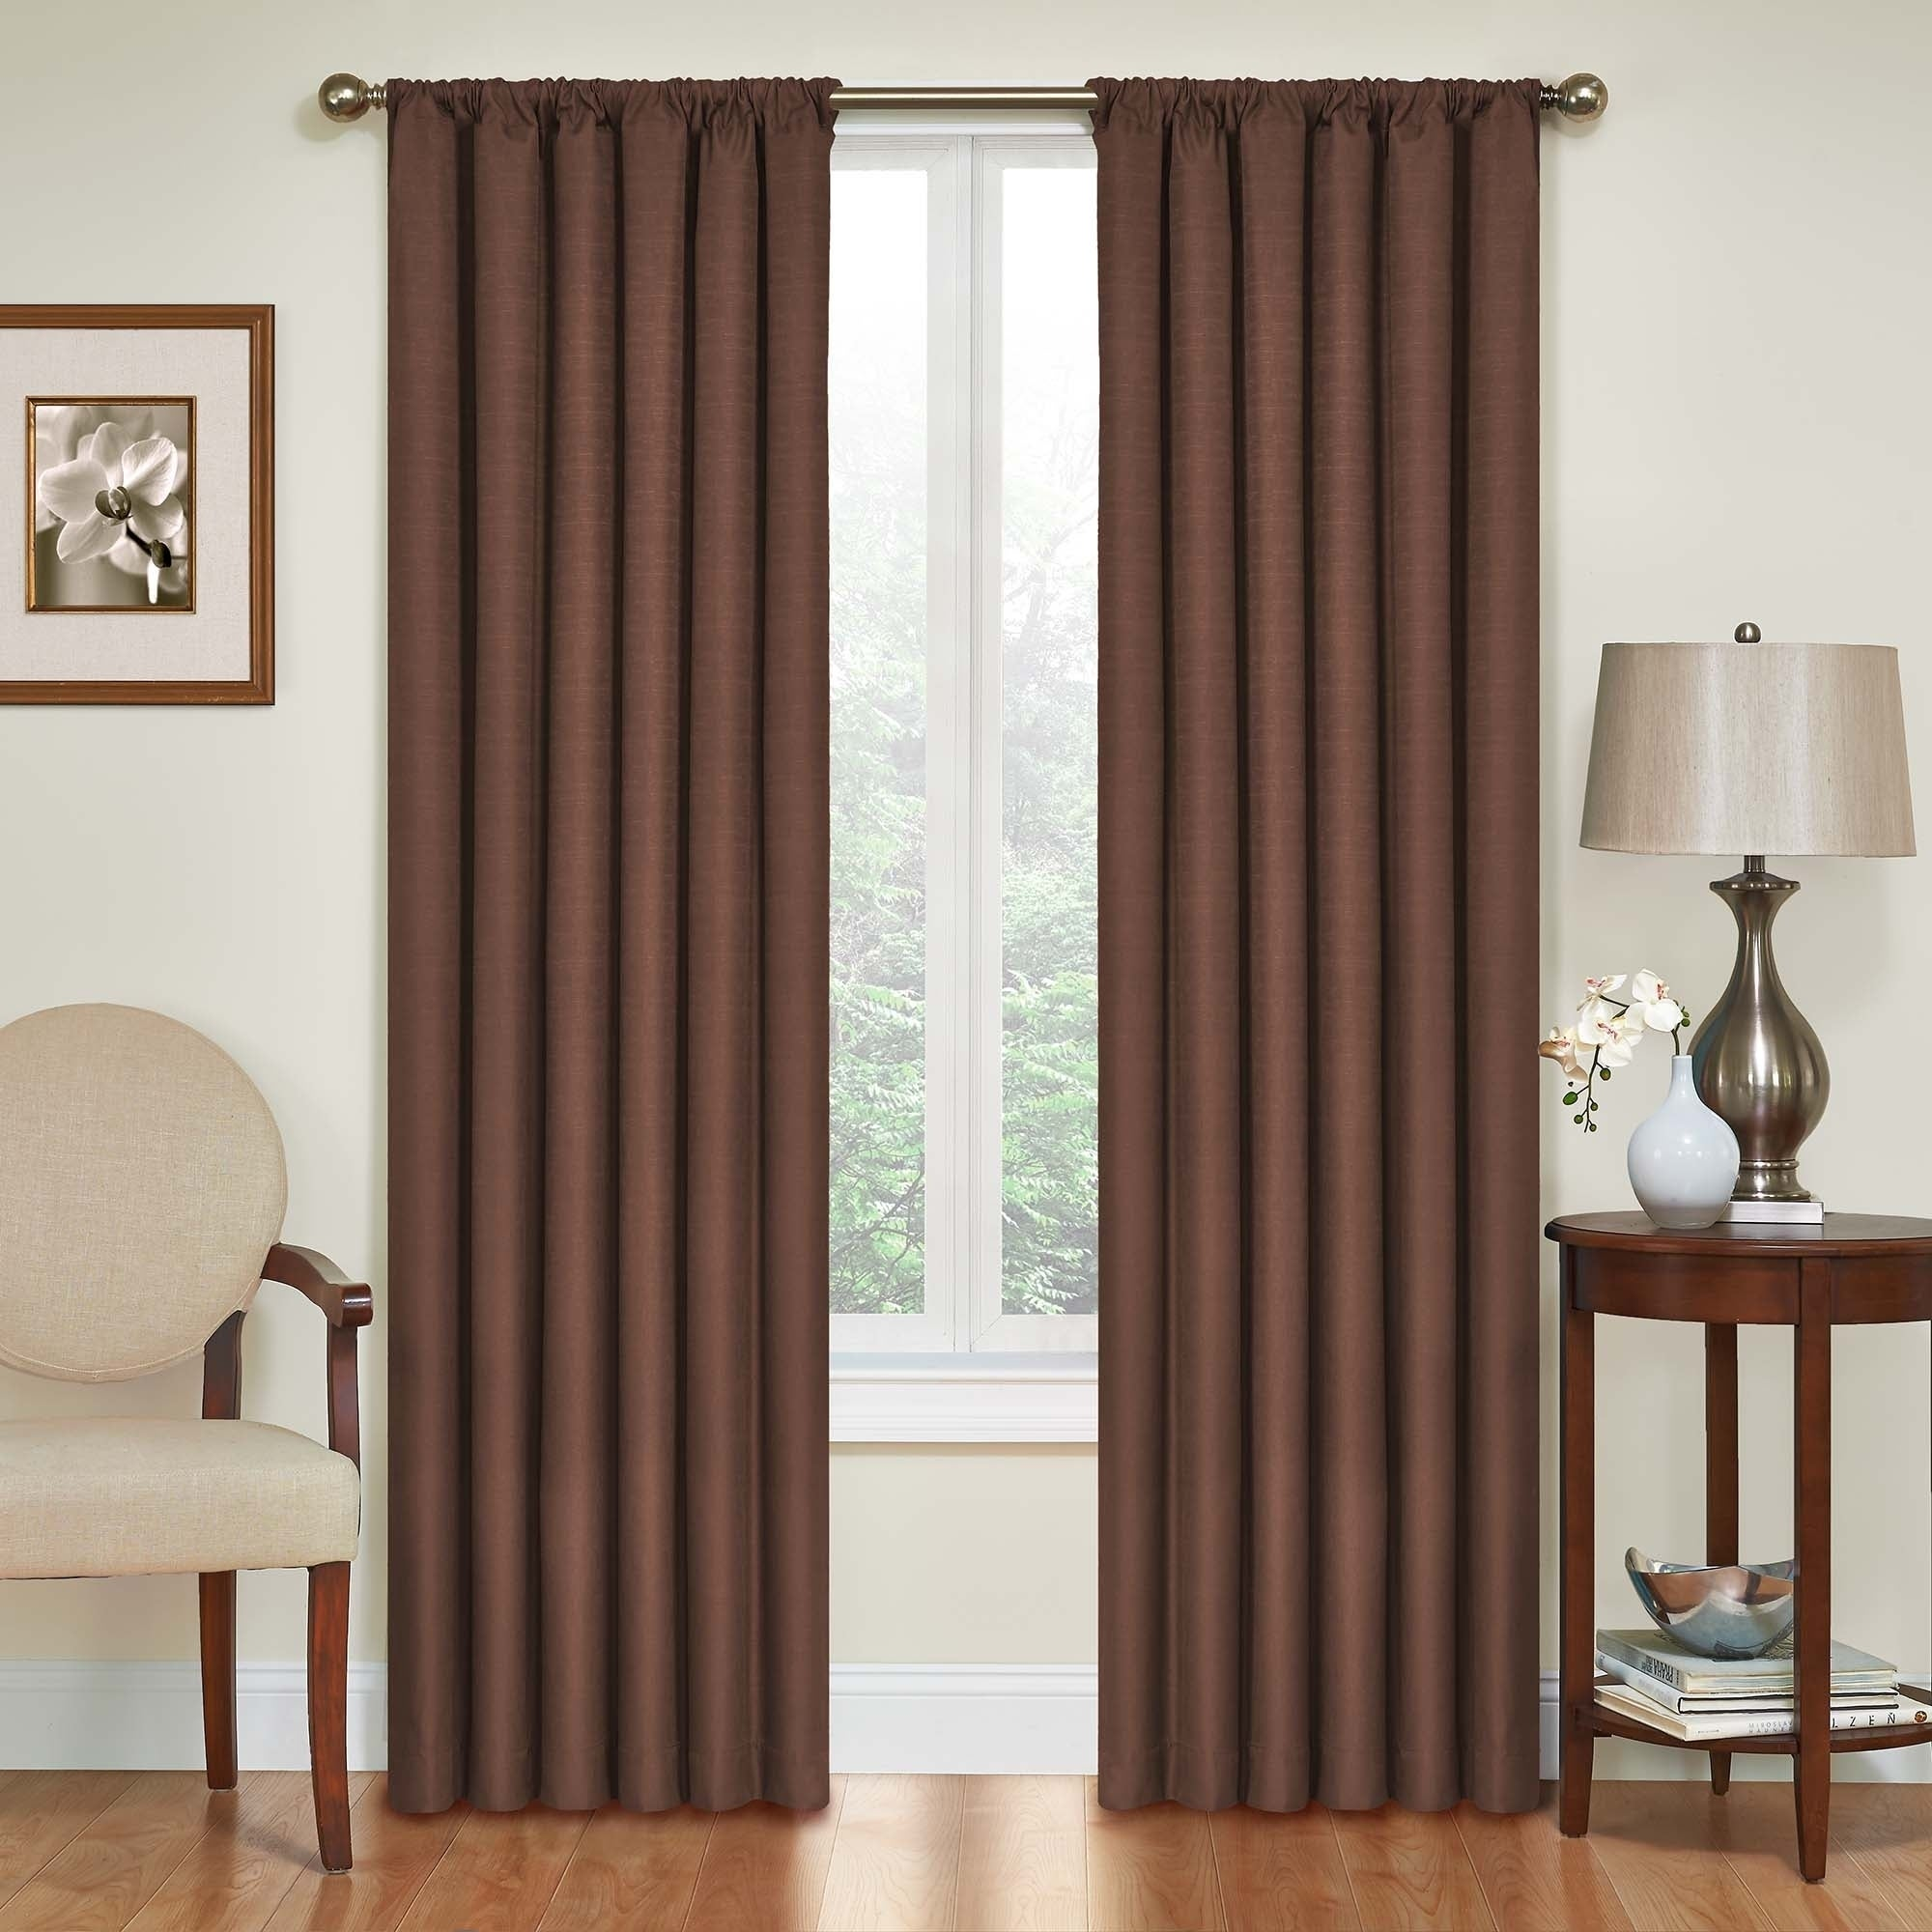 Shop Eclipse Kendall Blackout Window Curtain Panel - On Sale - Free Shipping On Orders Over $45 - Overstock.com - 11002719